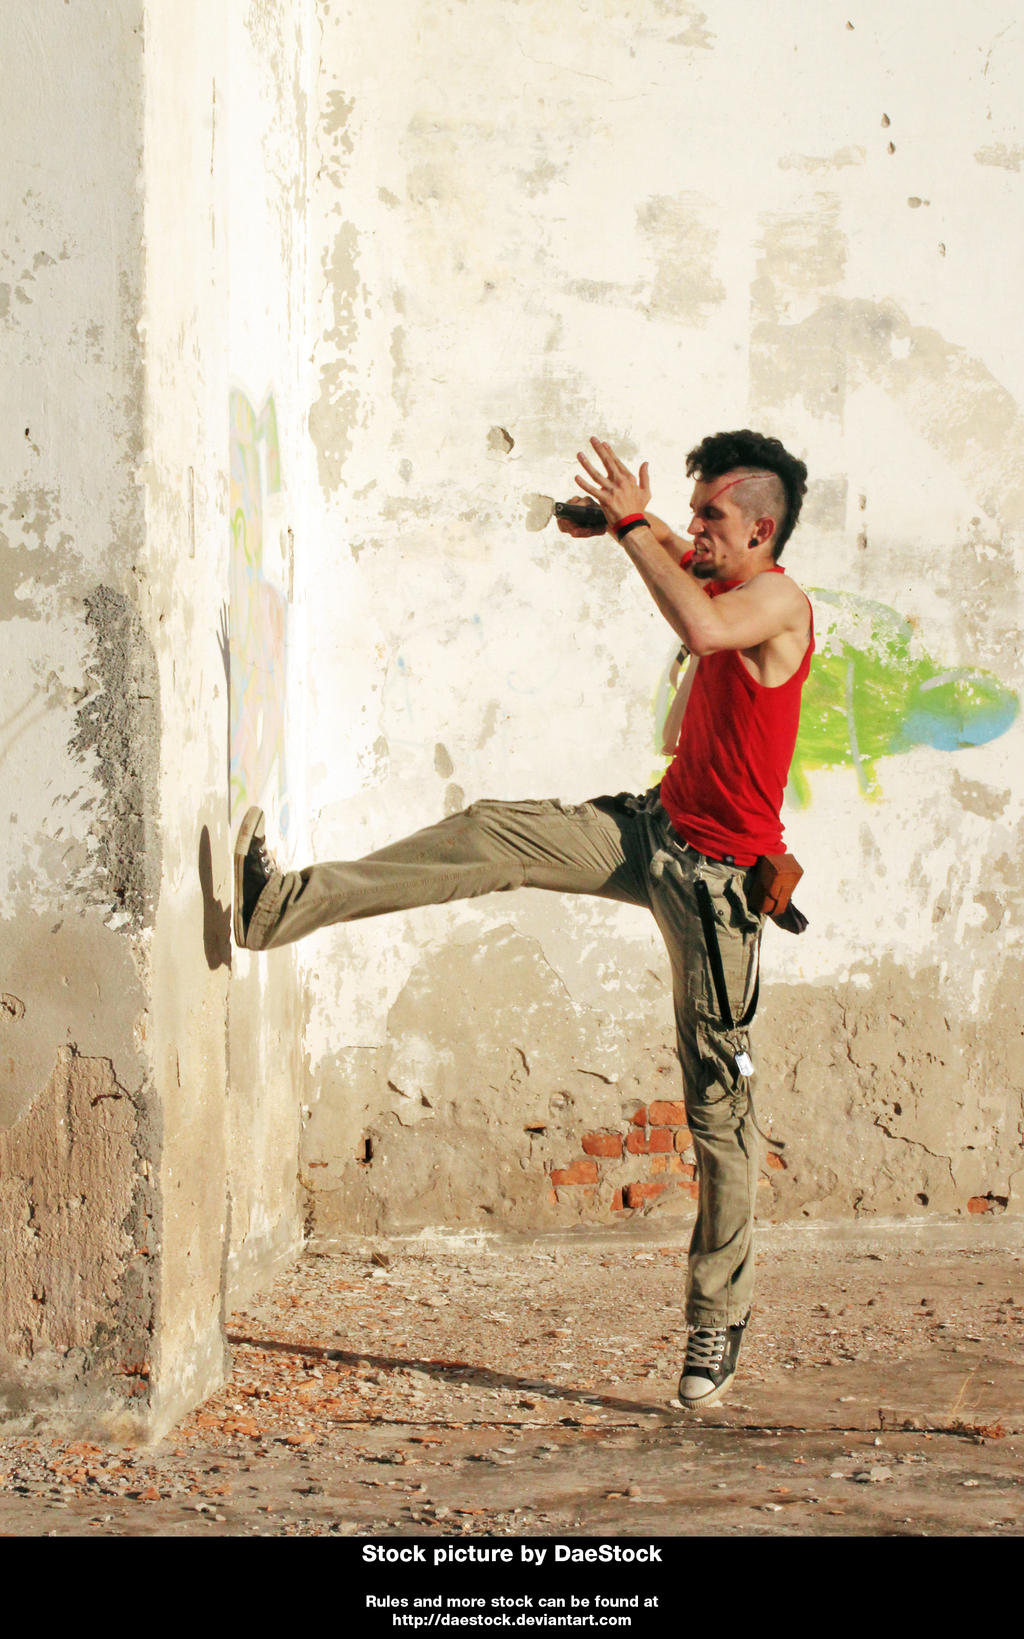 Vaas Cosplay 4 by DaeStock